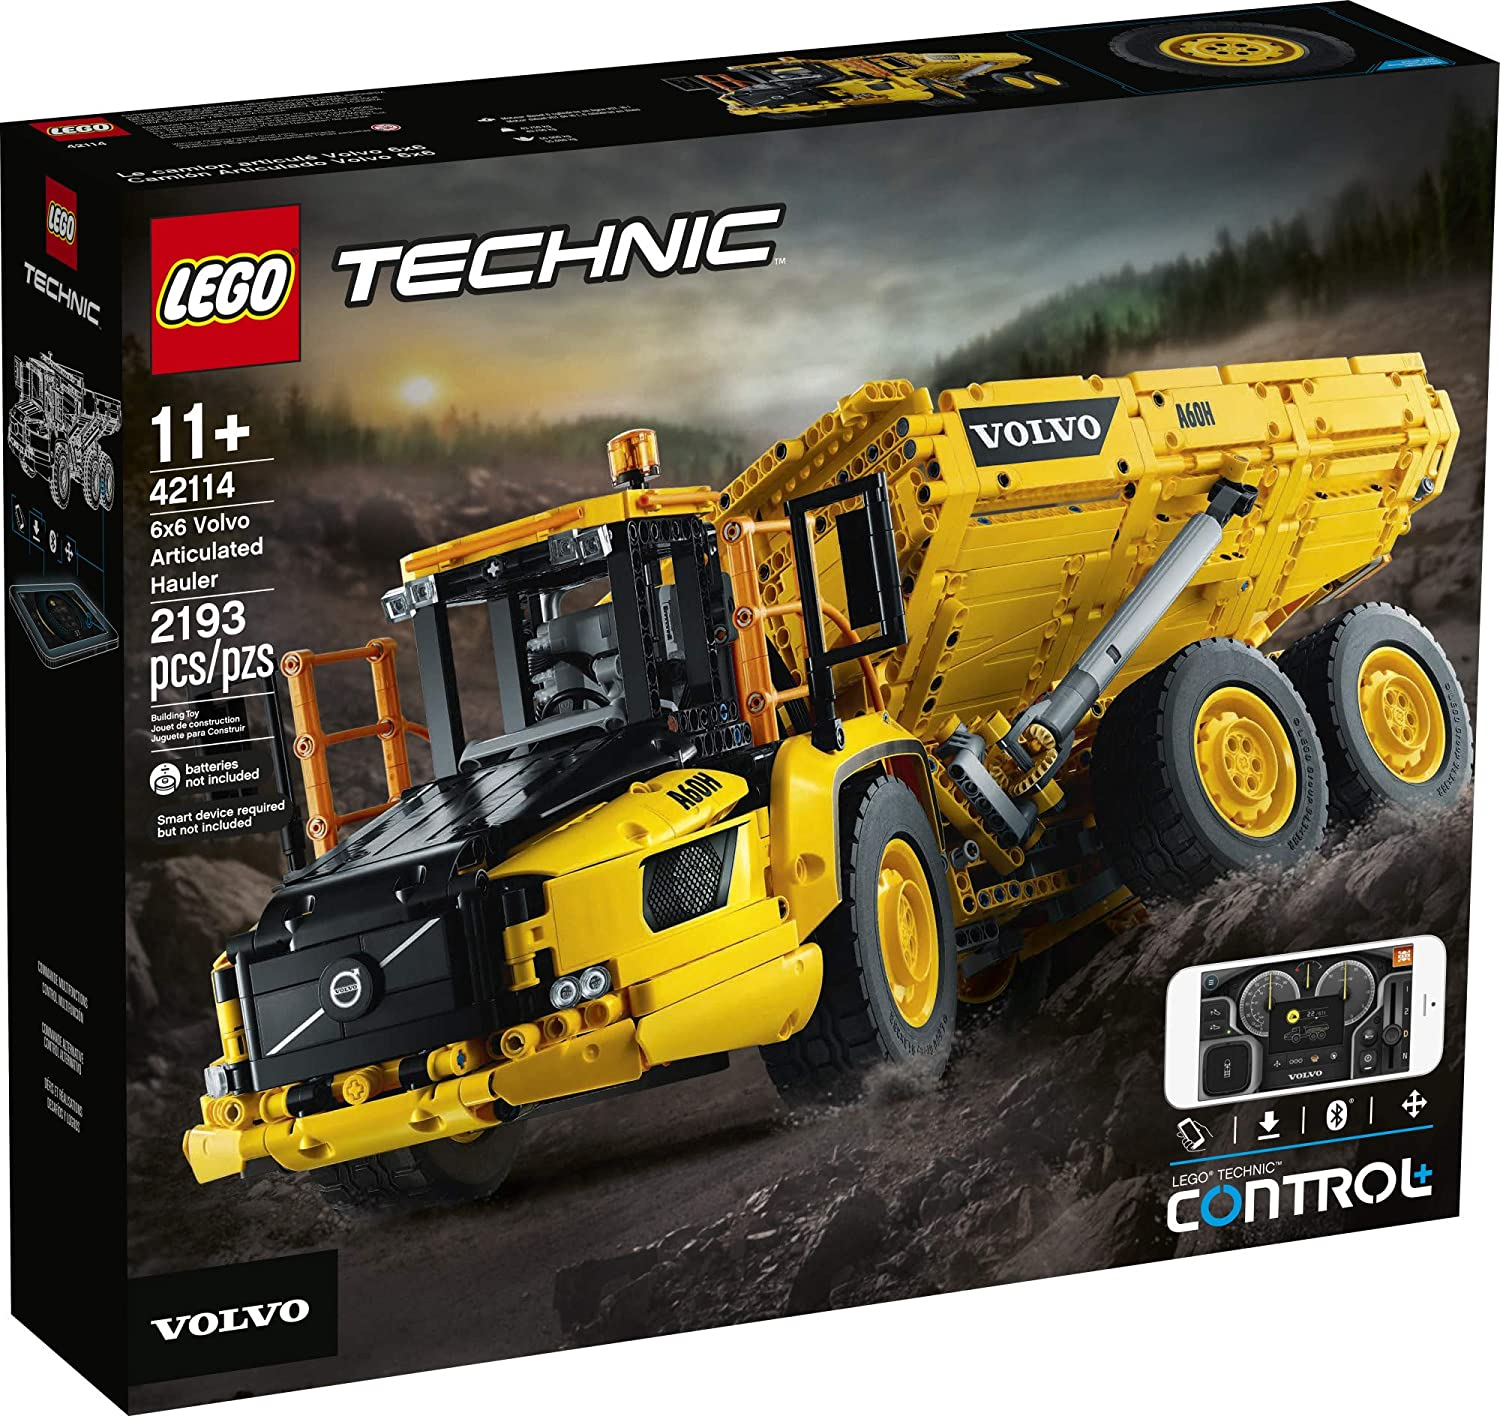 LEGO Technic 6x6 Volvo Articulated Hauler Building Kit 2,193 Pieces New 2020 42114 Volvo Truck Toy Model for Kids Who Love Construction Vehicle Playsets